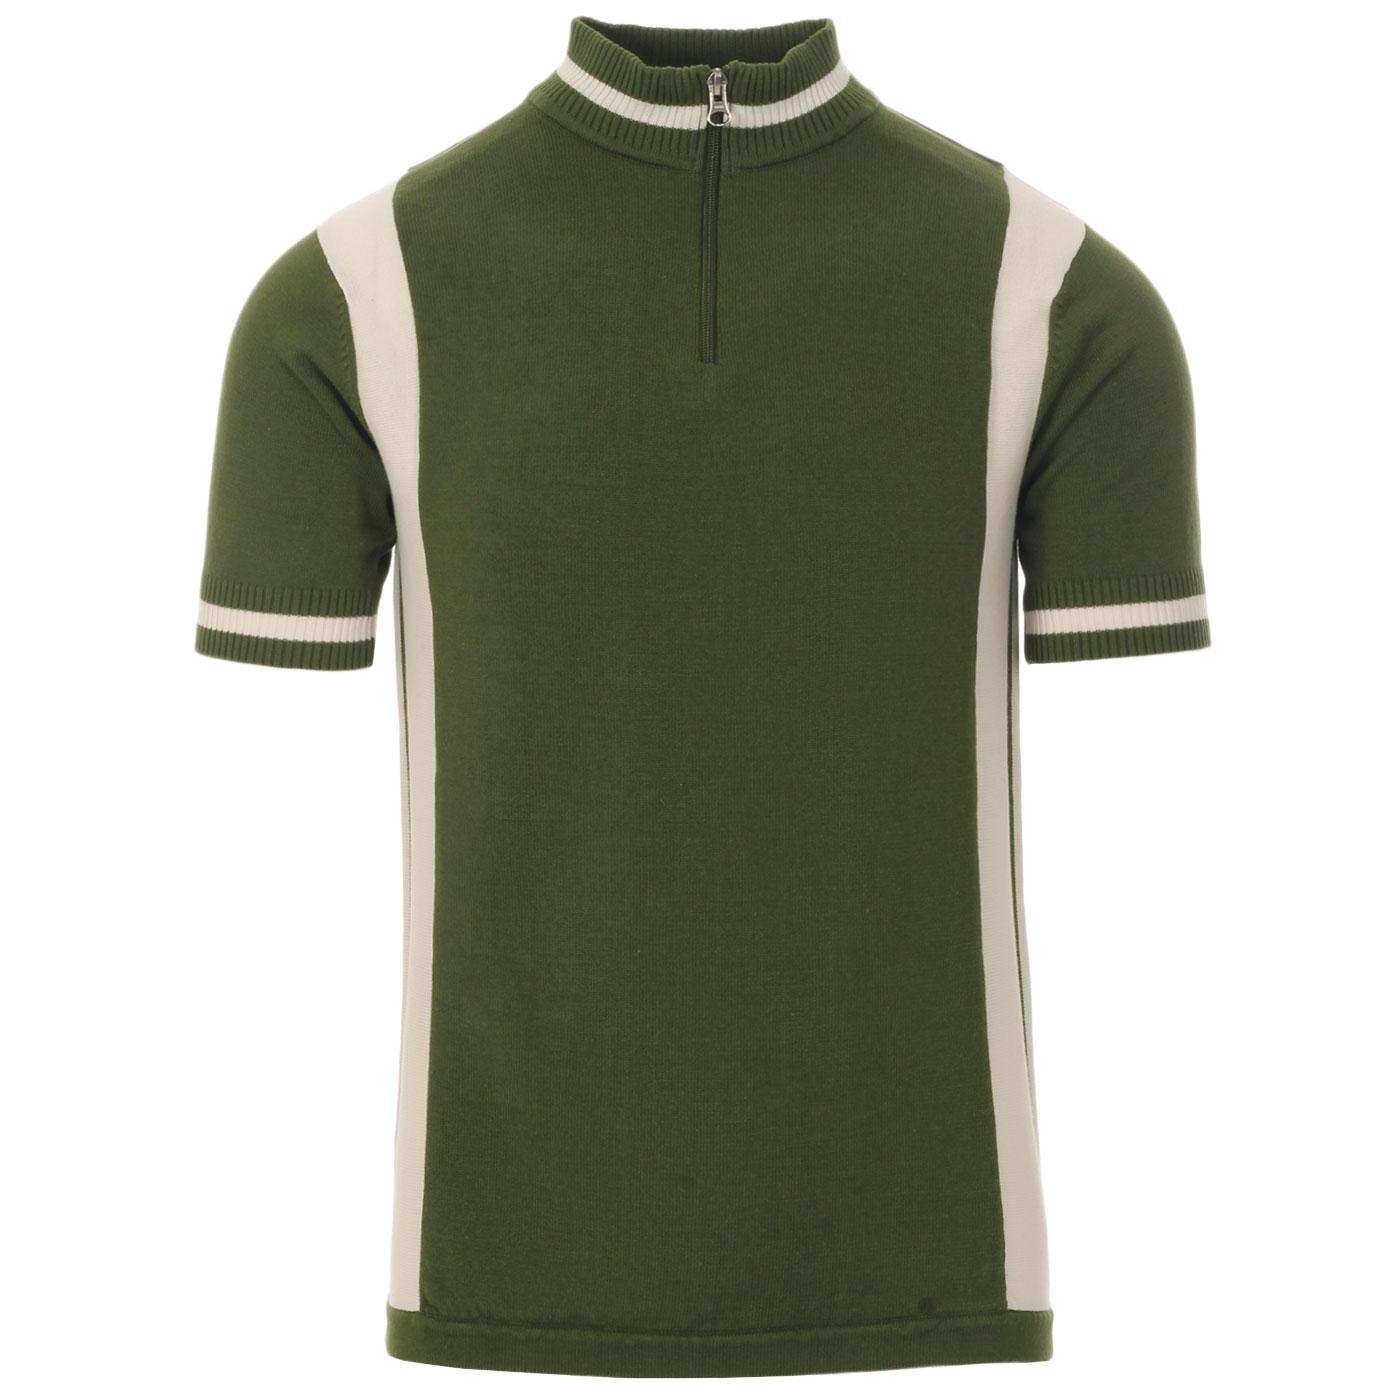 Vitesse MADCAP ENGLAND Mod Knit Cycling Top (CG)